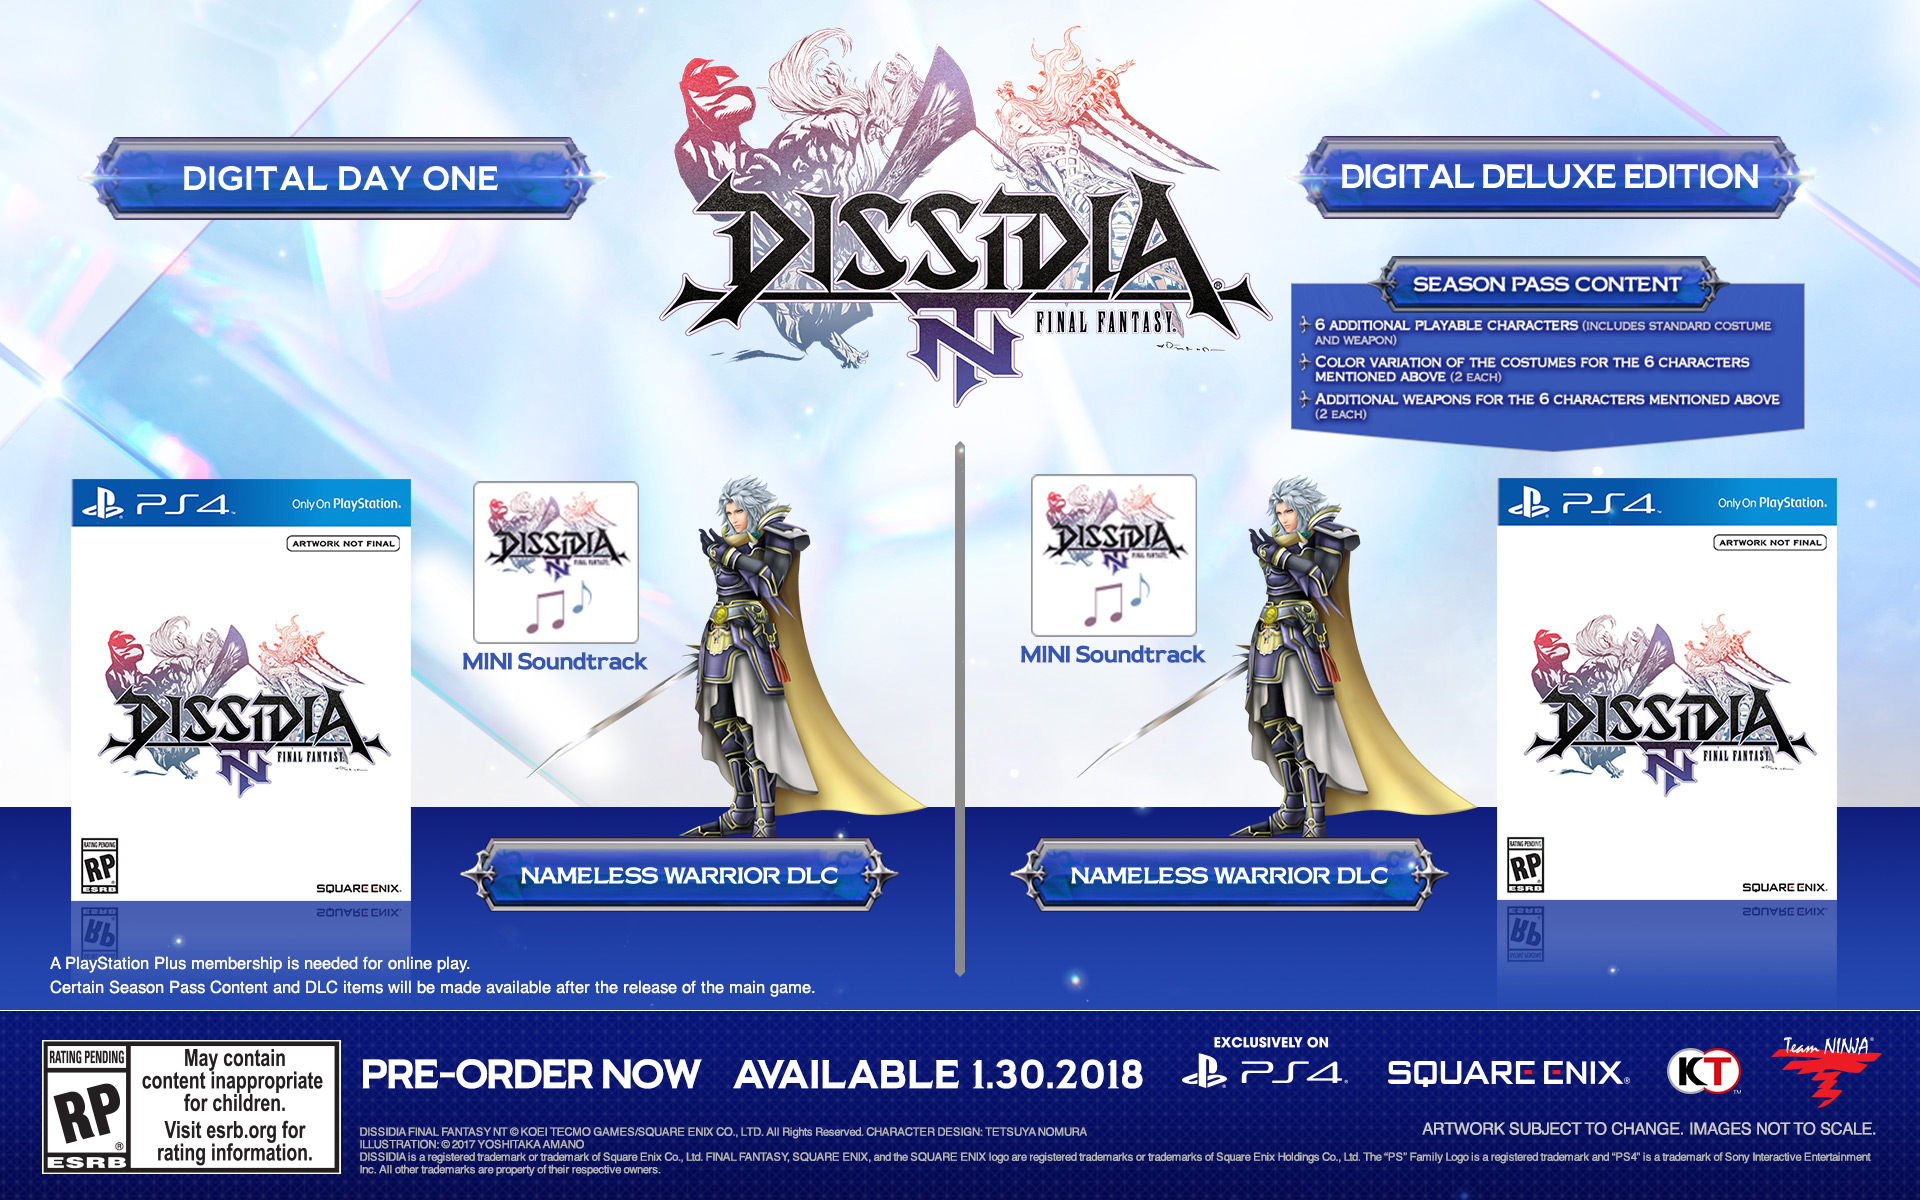 Dissidia Final Fantasy NT Releases in January, Season Pass Revealed